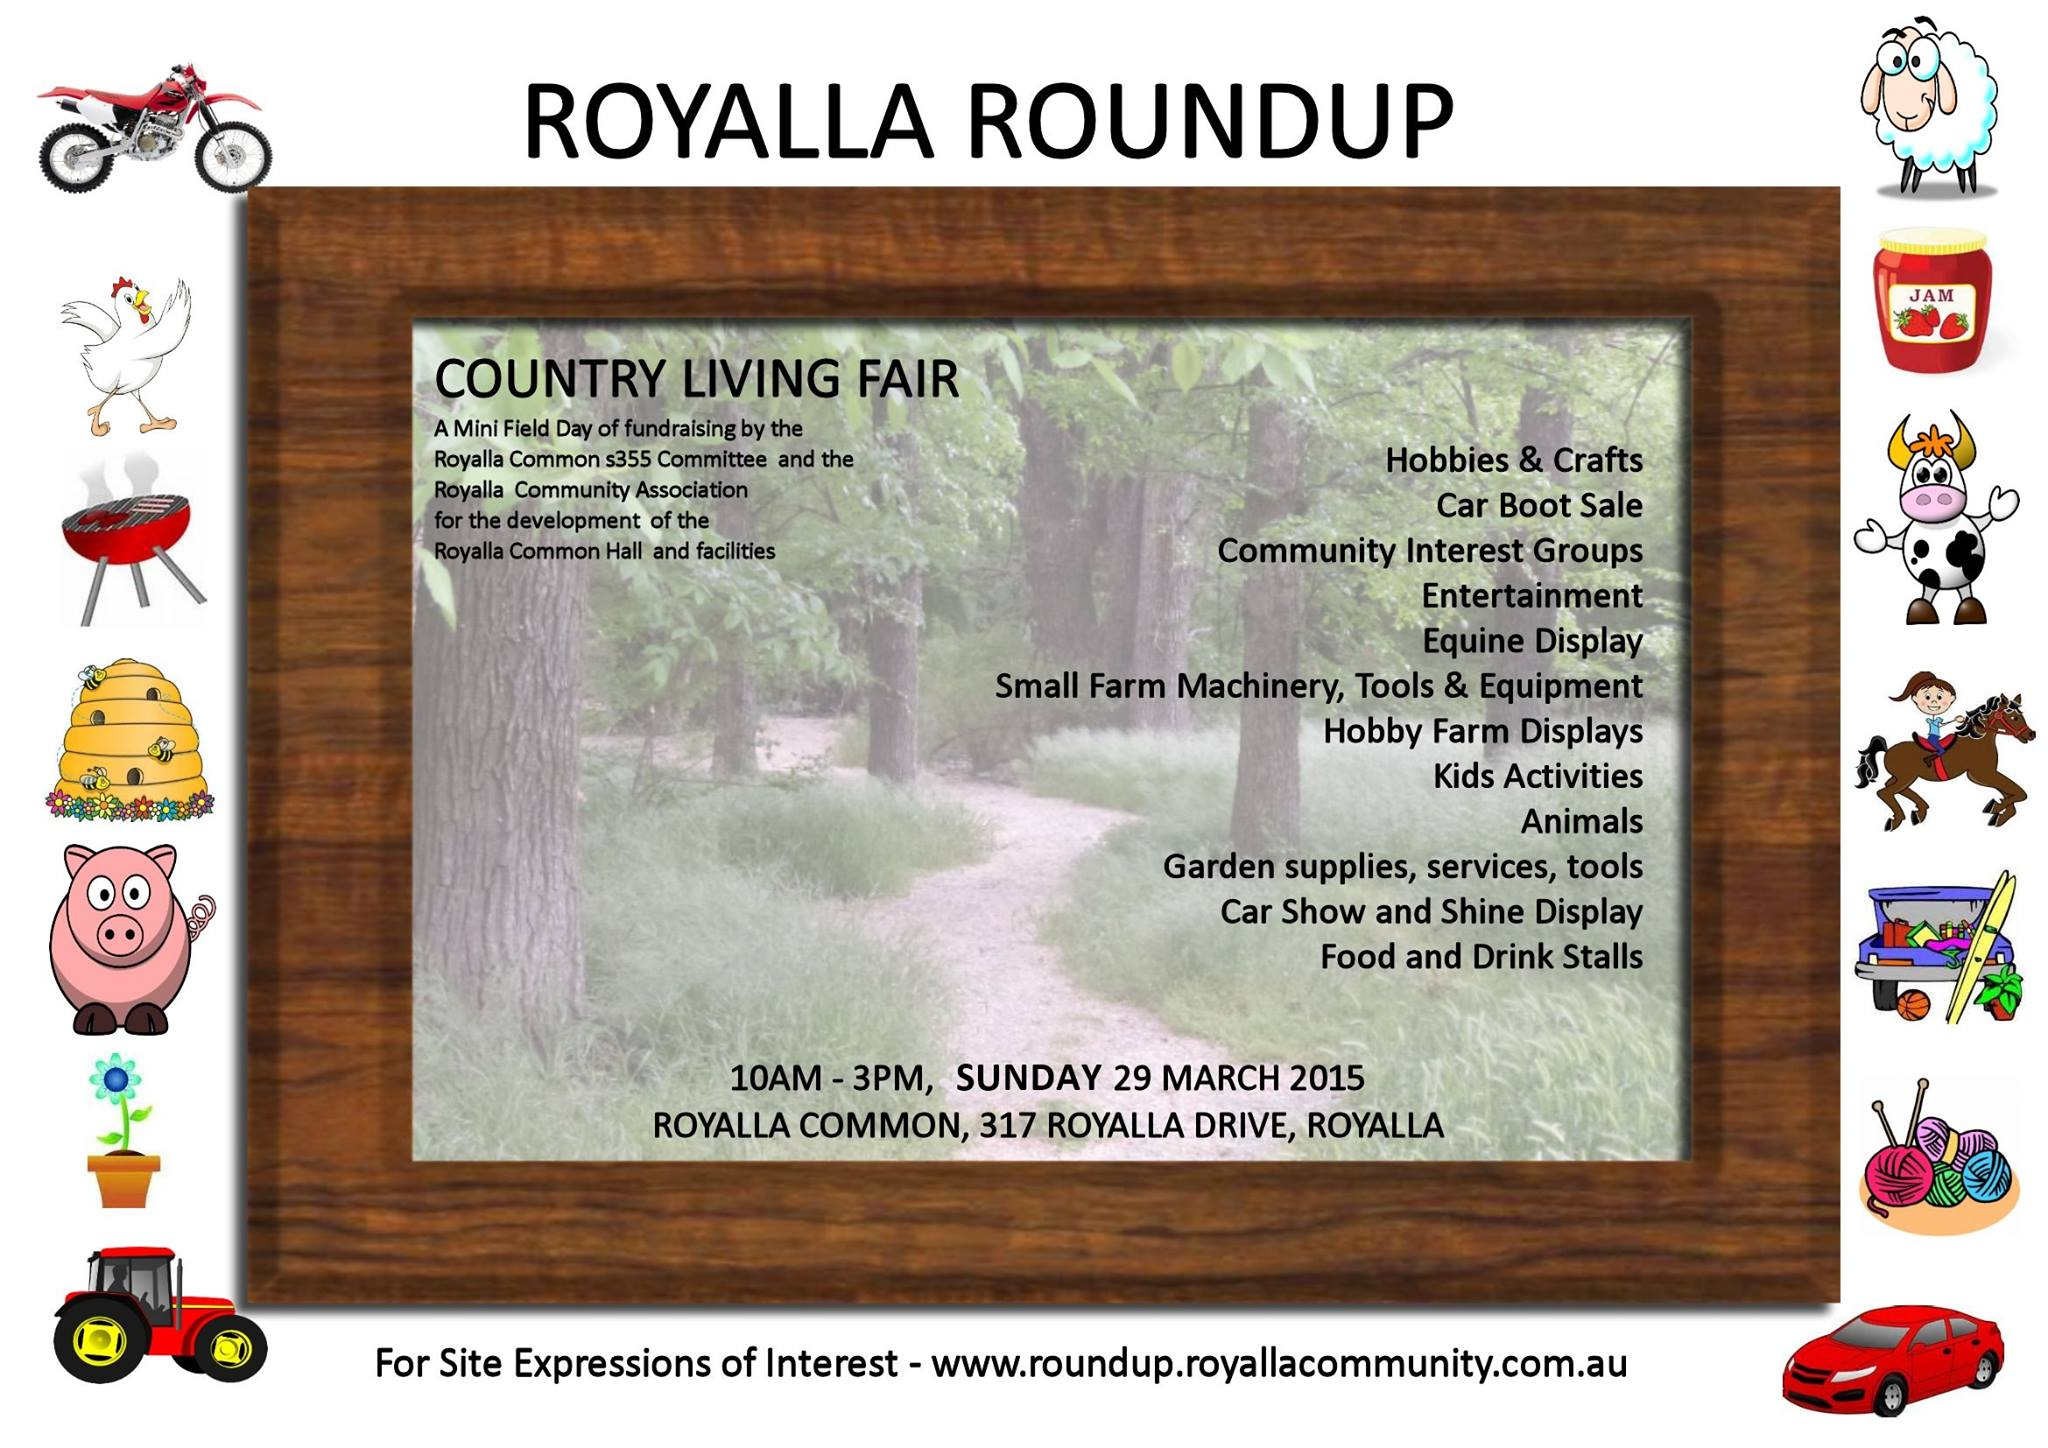 Royalla Roundup